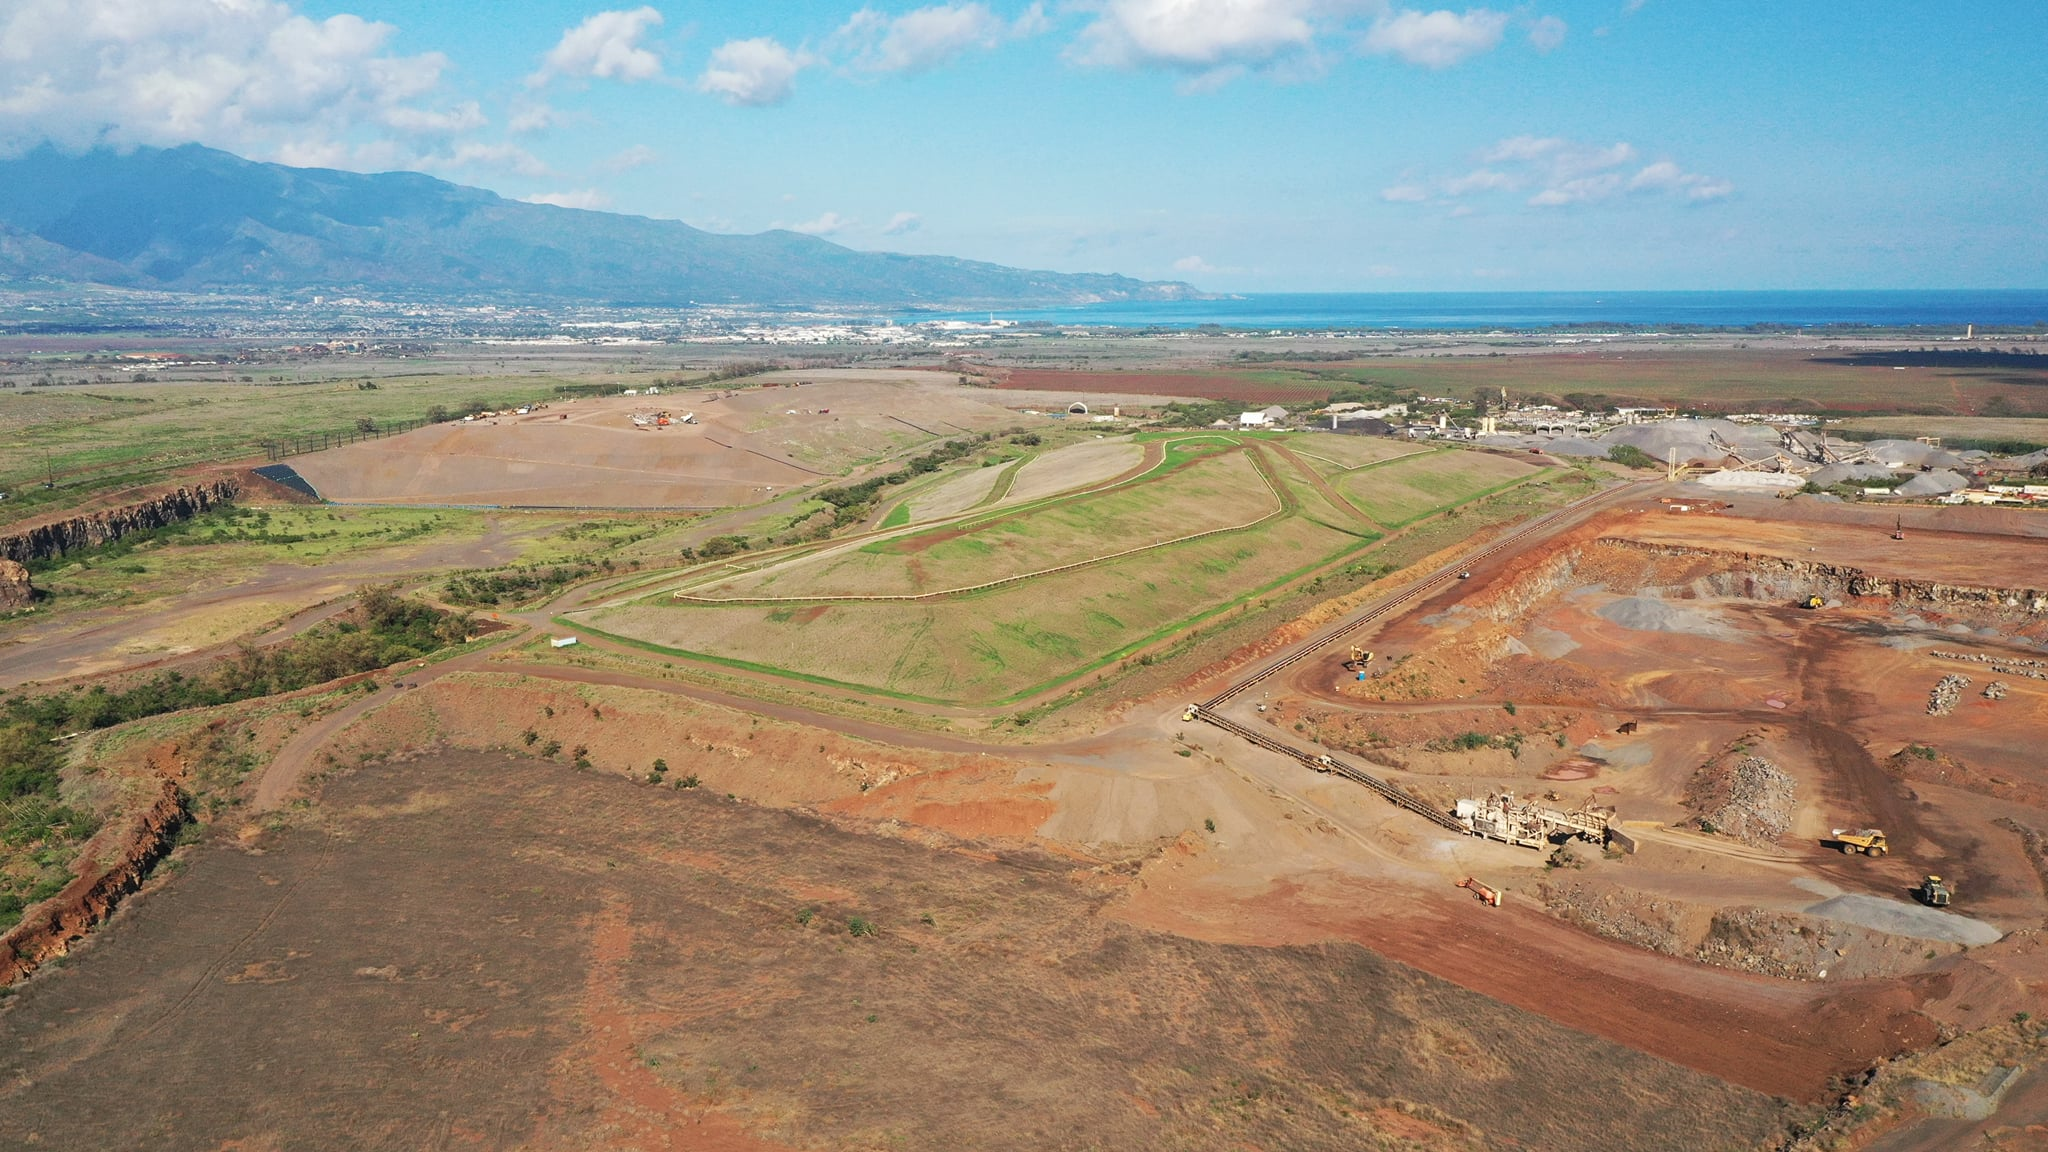 Temporary Waiver on Landfill Tipping Fees Extended for Ha'ikū Applicants